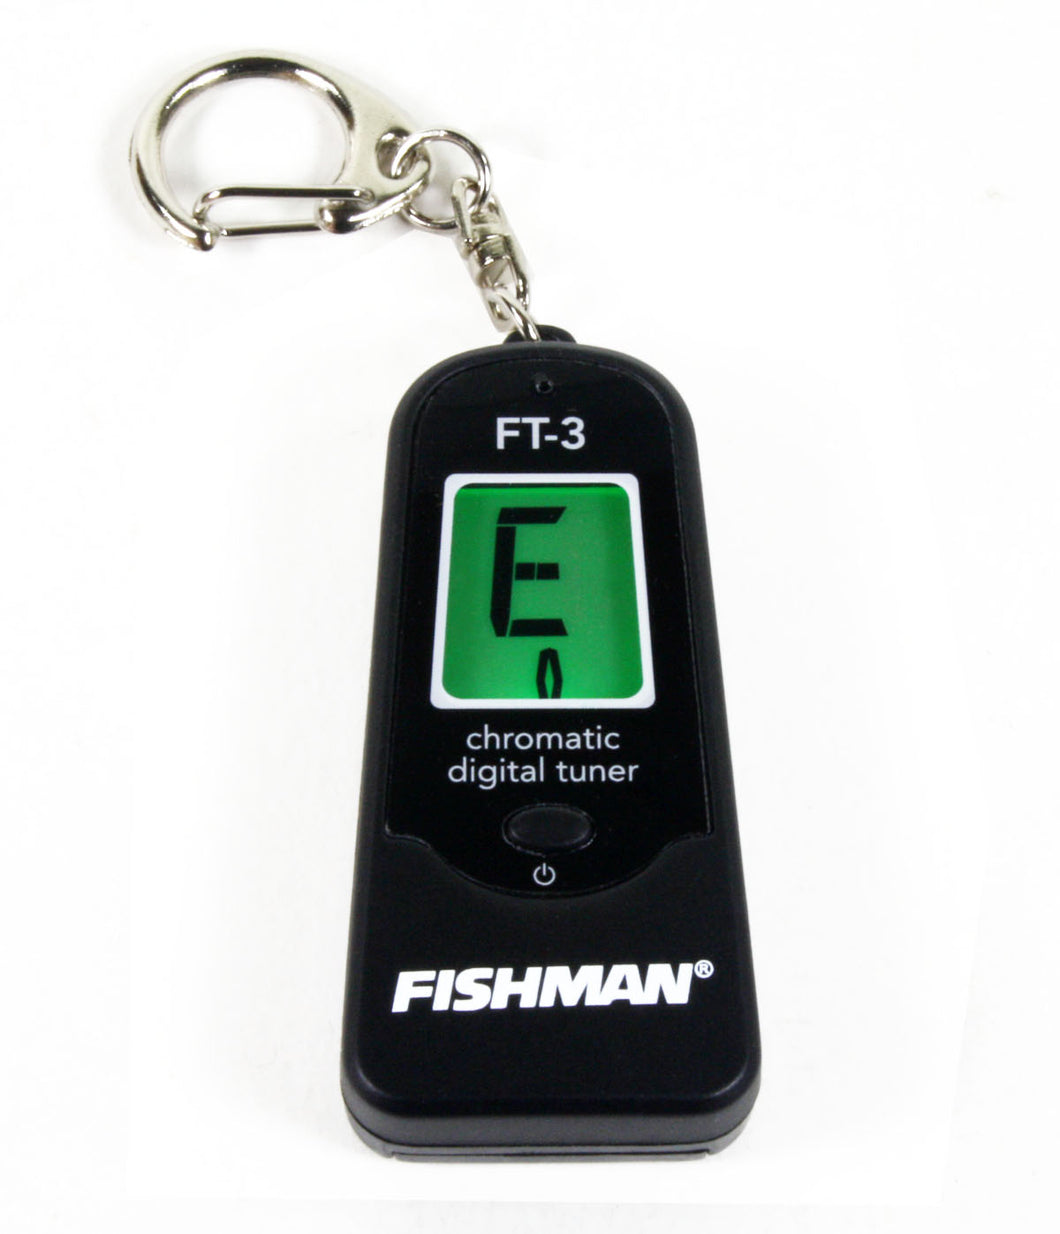 Fishman FT-3 Digital Keychain Guitar / Bass Tuner